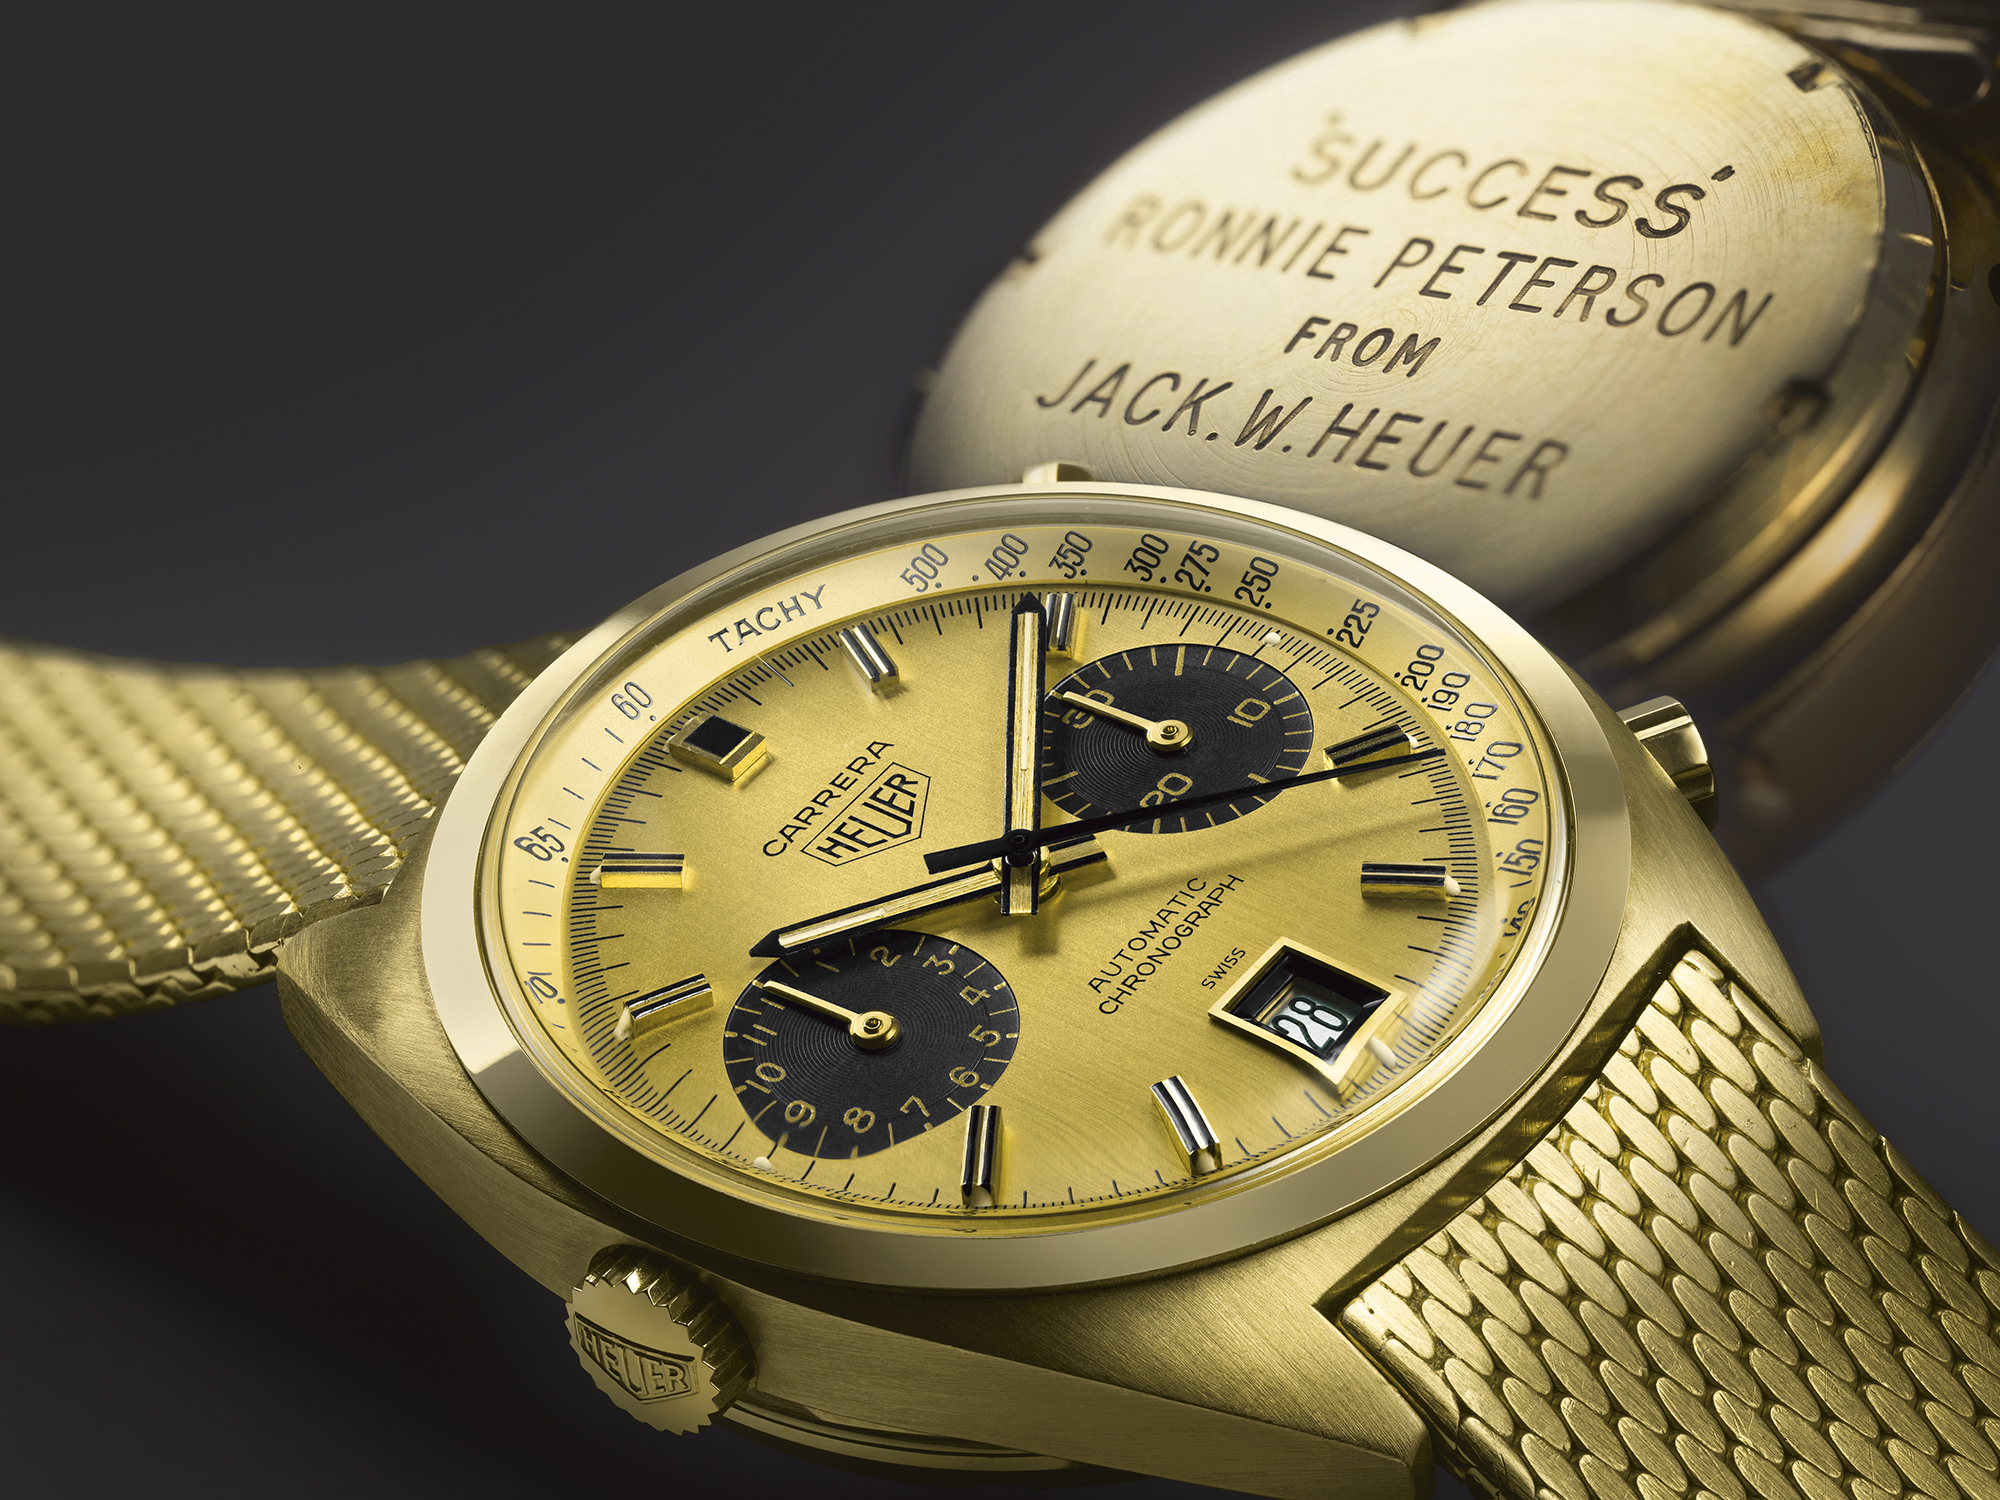 Bonhams sets new world record price for any modern TAG Heuer sold at auction